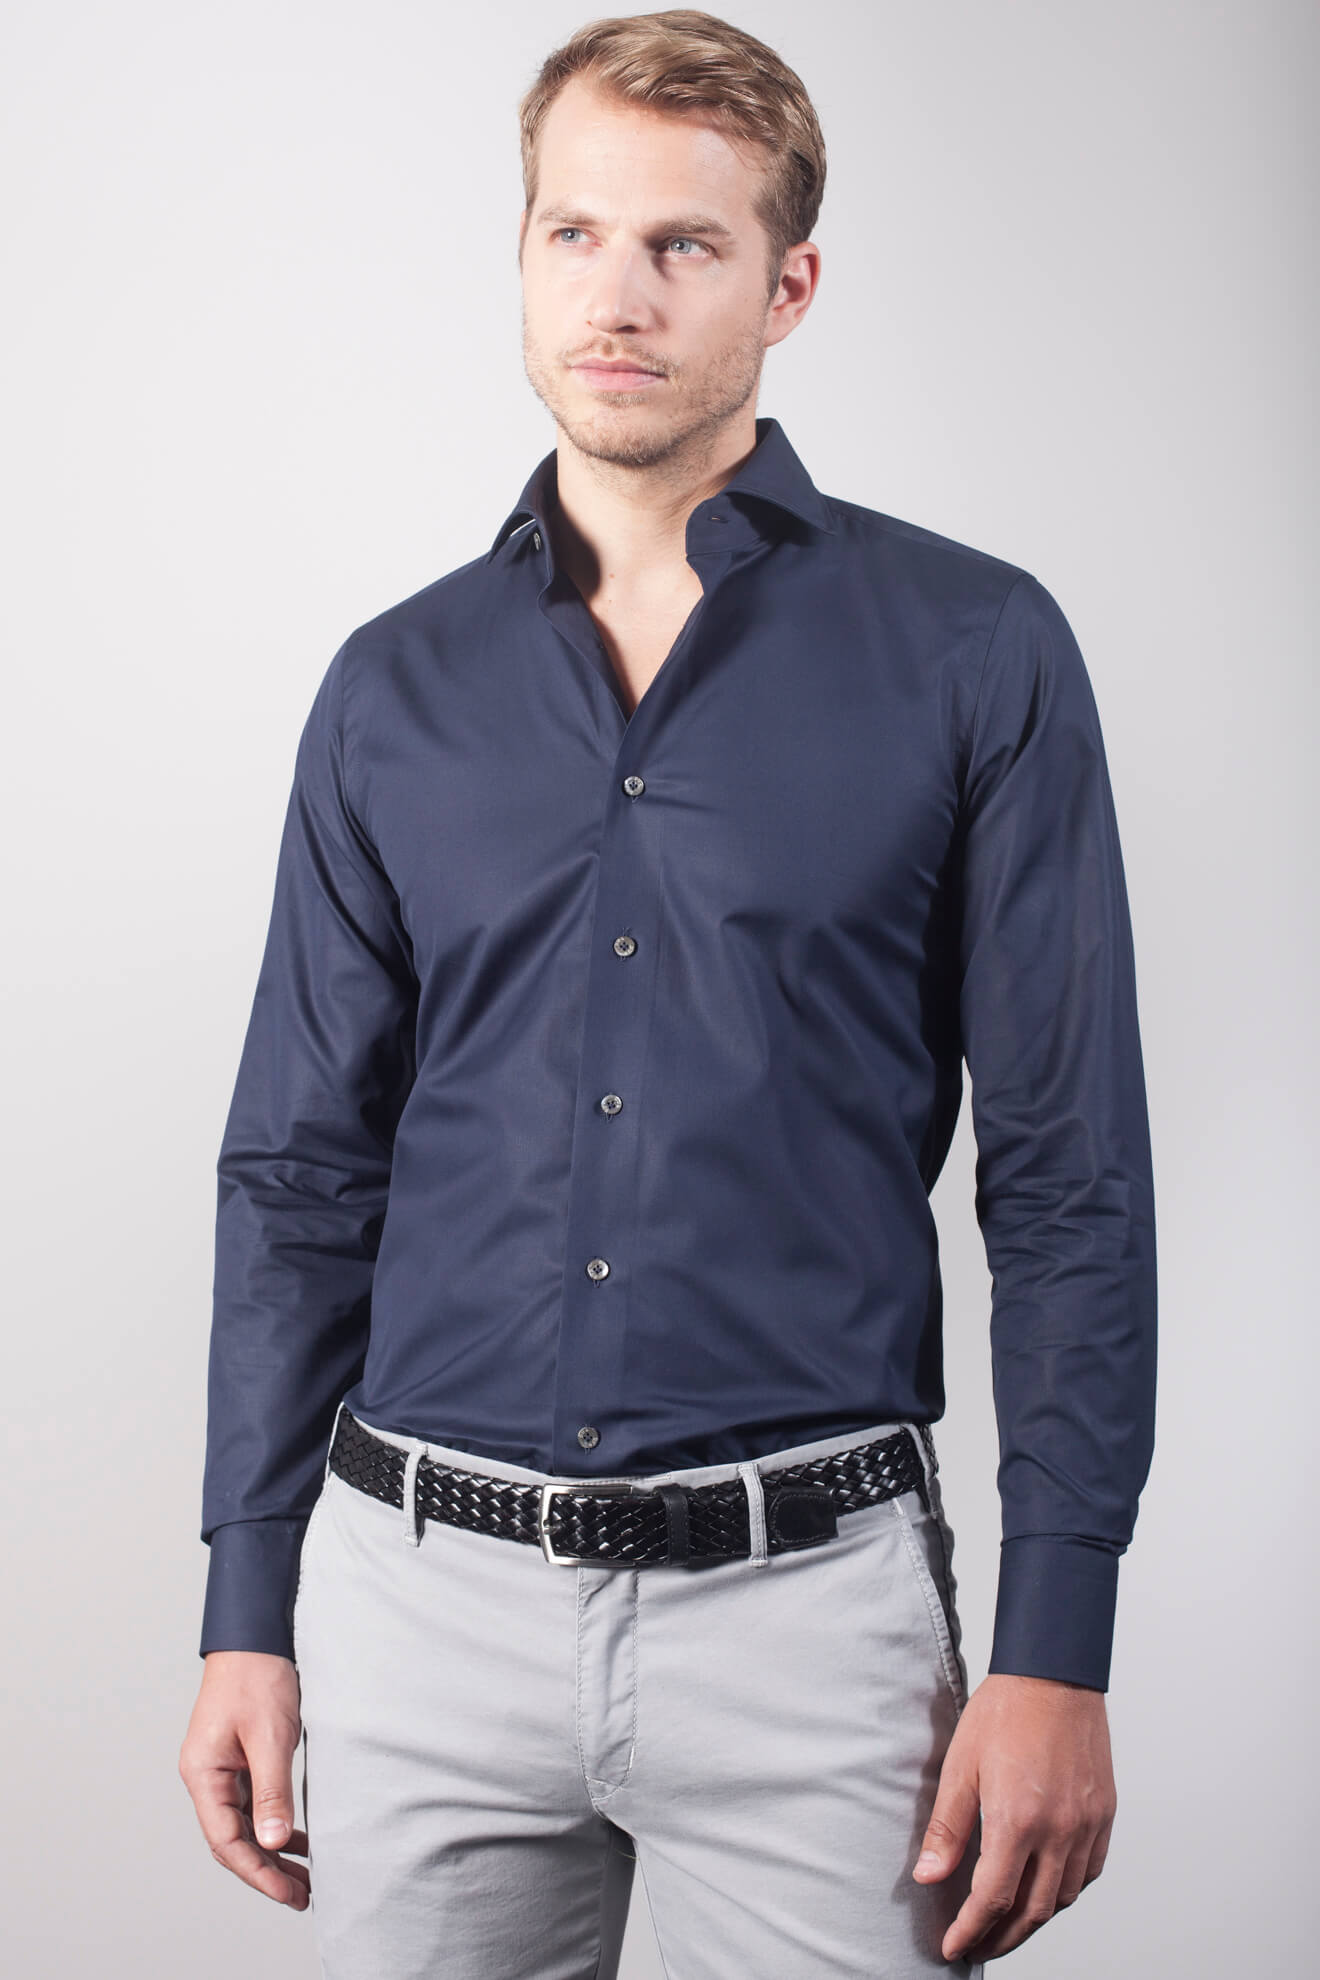 DU4-Shirts-True-Blue-Slim-Fit-Hemd-1